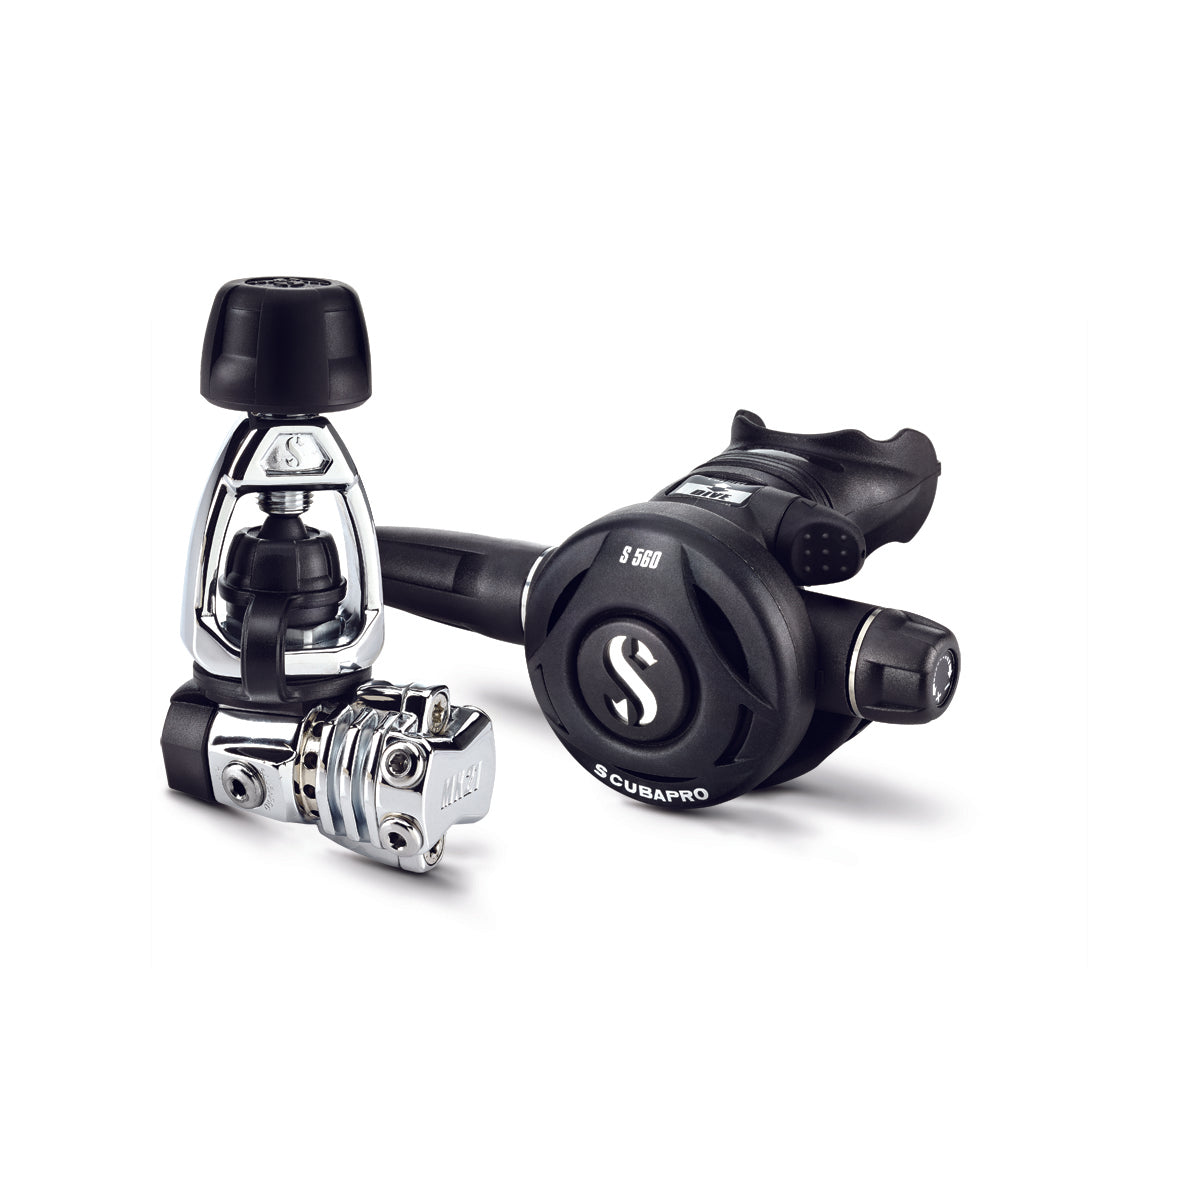 MK21/S560 DIVE REGULATOR SYSTEM, INT